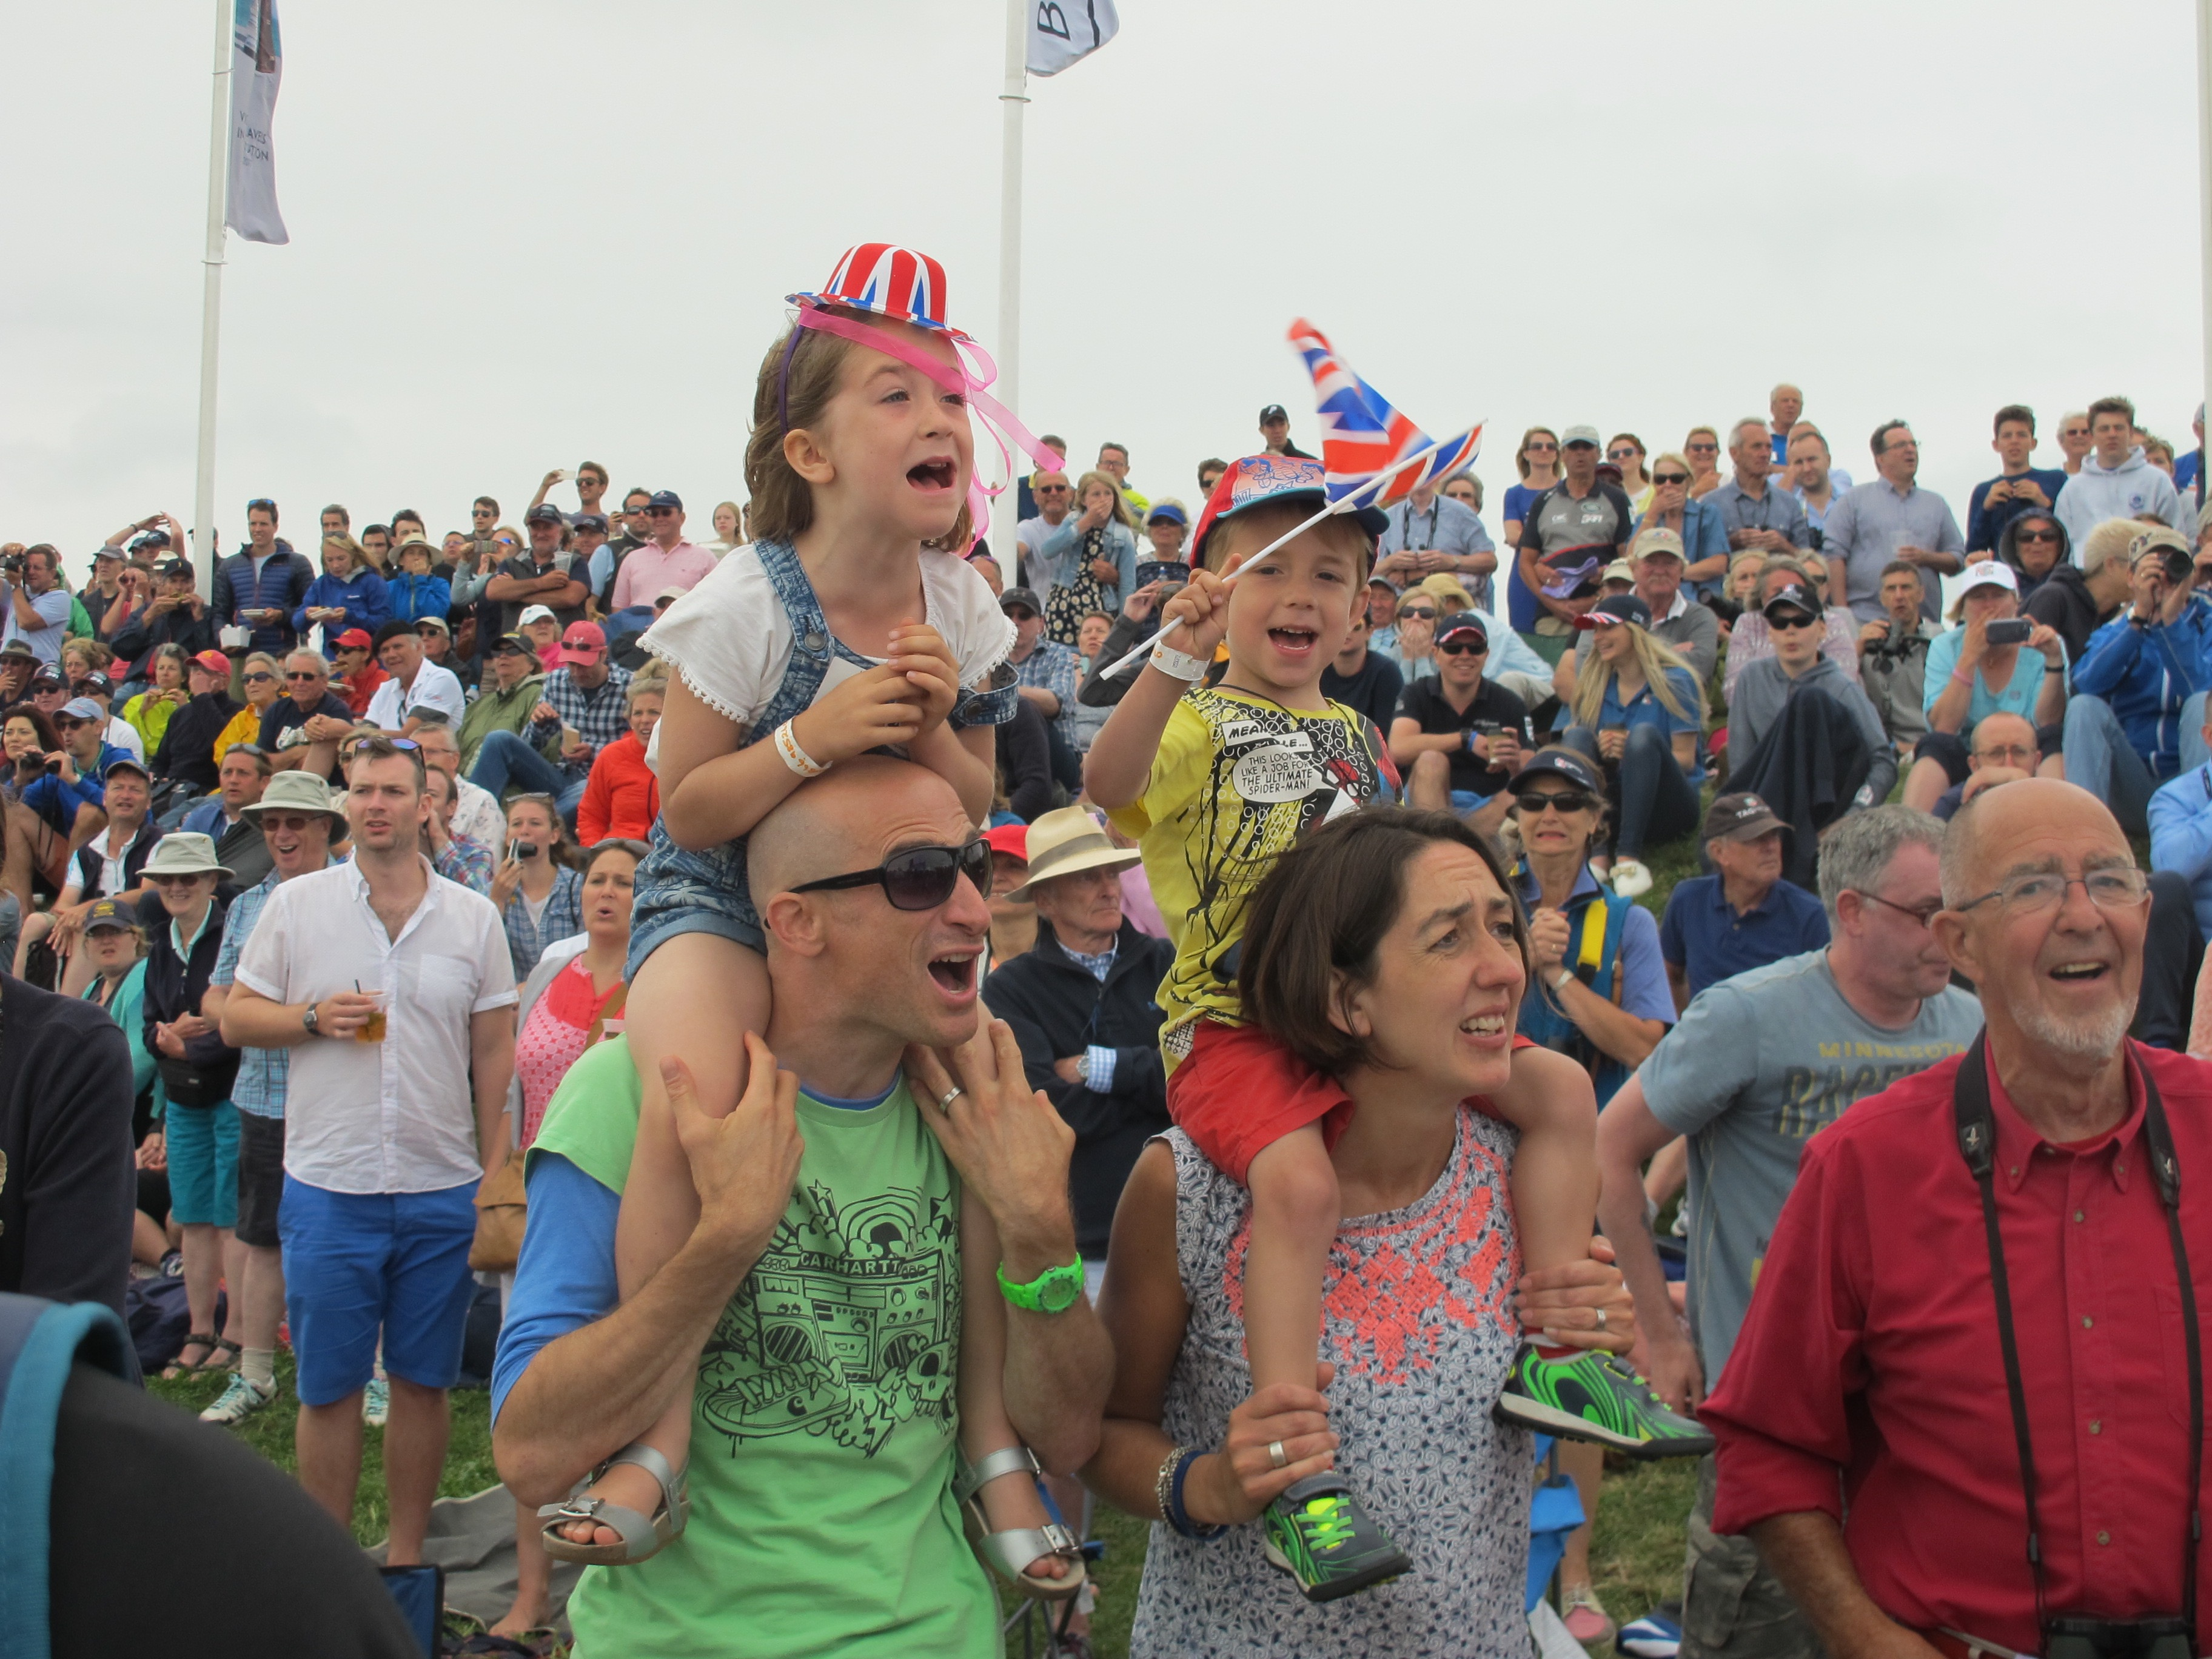 America's Cup World Series Portsmouth 2016